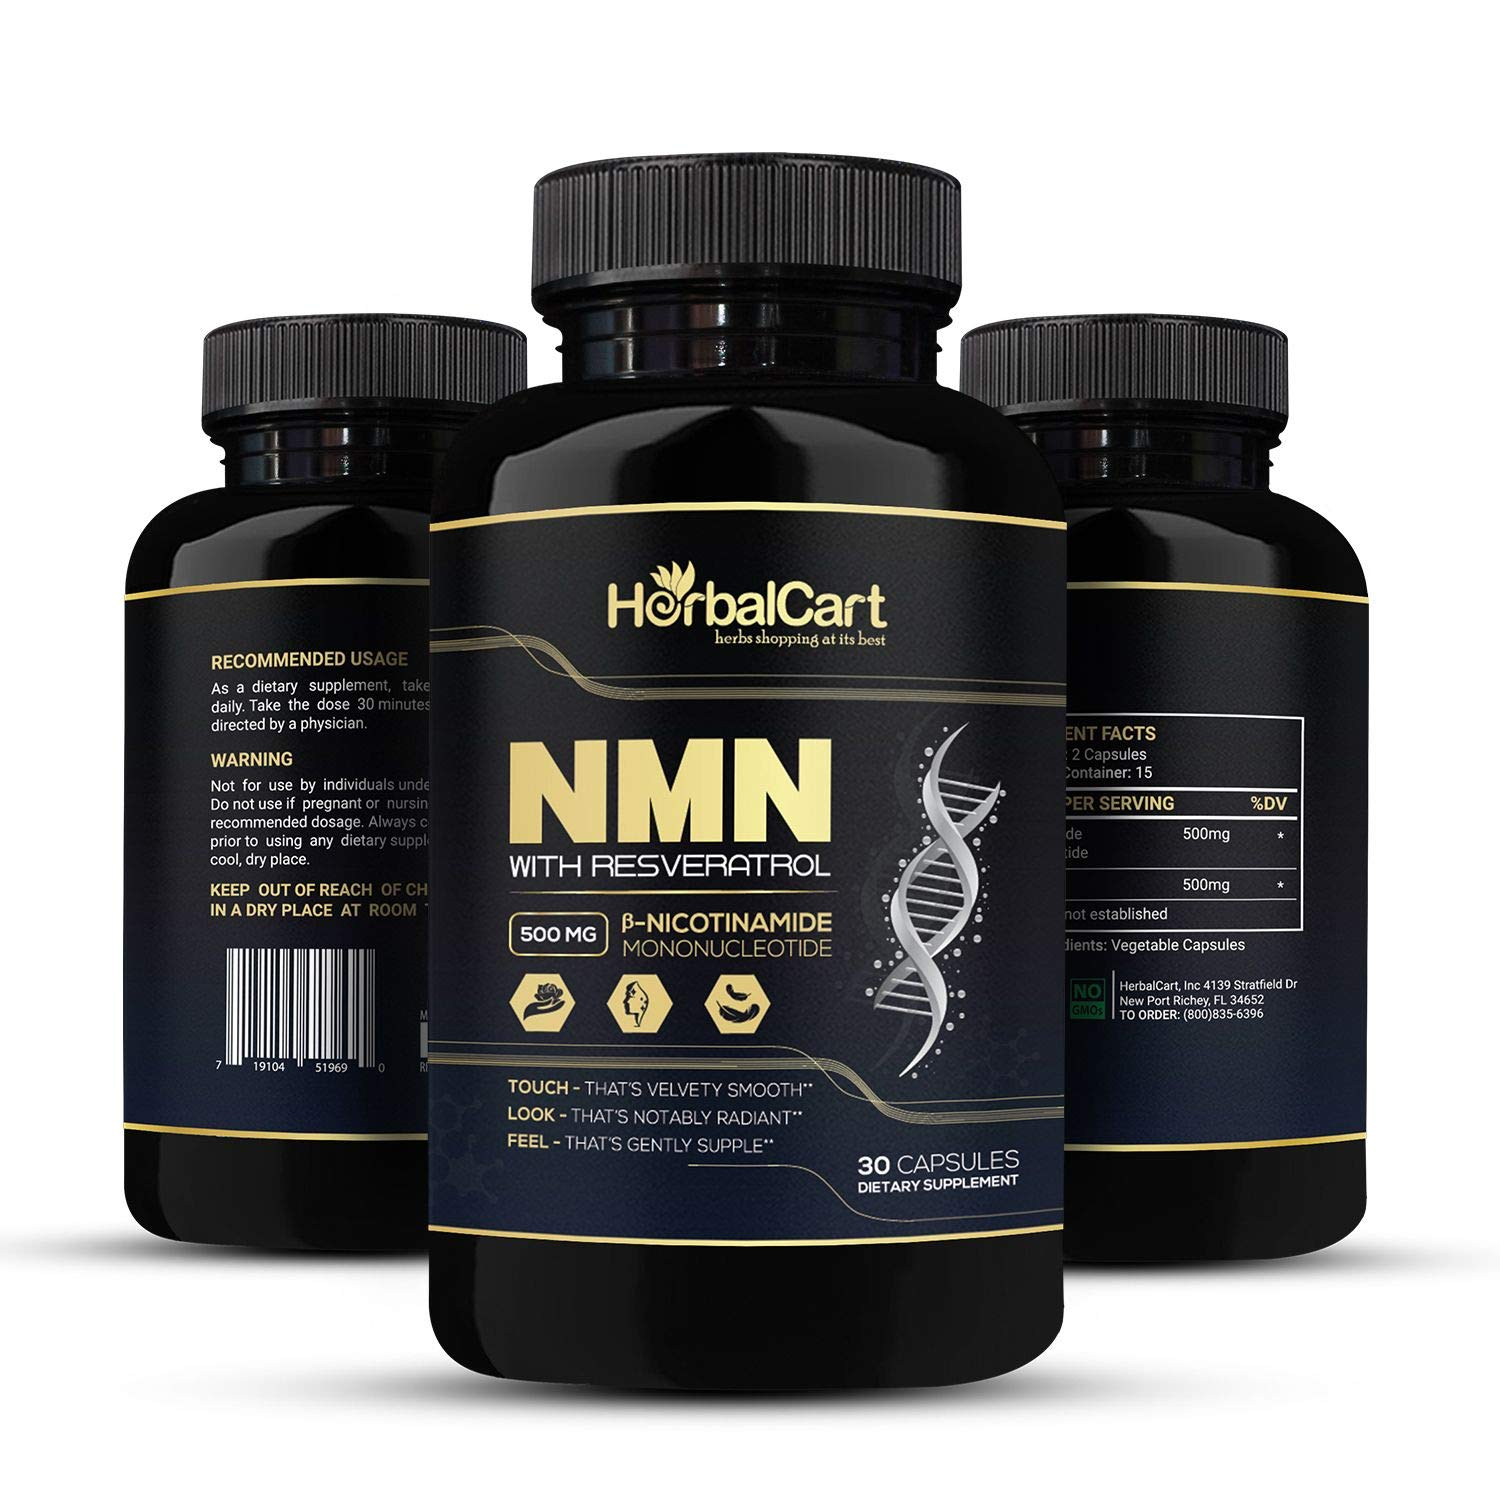 HerbalCart - NMN Supplement with Resveratrol - Best Anti-Aging Pills for Men & Women - Formulated with [ β-Nicotinamide Mononucleotide + Resveratrol ] 500mg - 30 Capsules by HerbalCart Inc